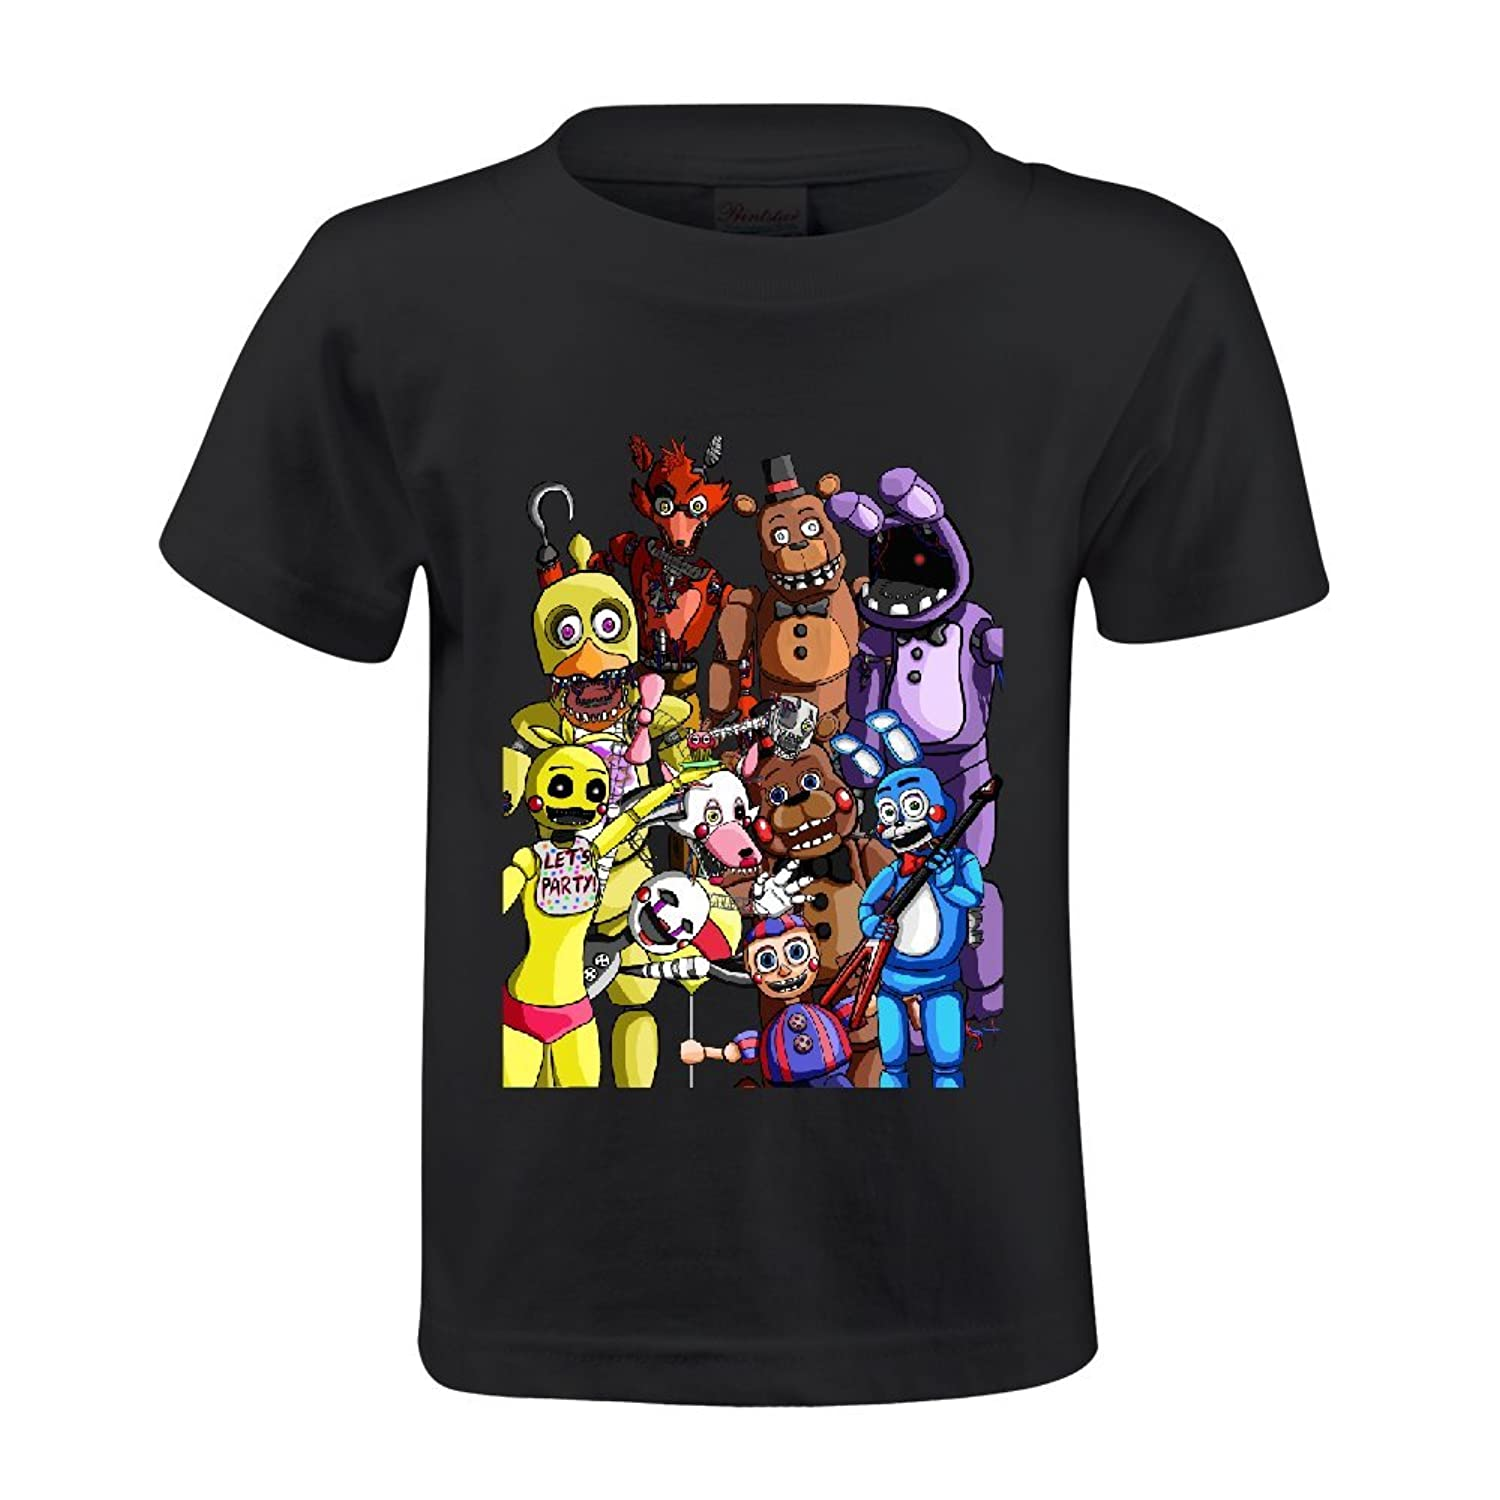 Toypop Five Nights At Freddy's Youth Cotton O-Neck Tshirts Design